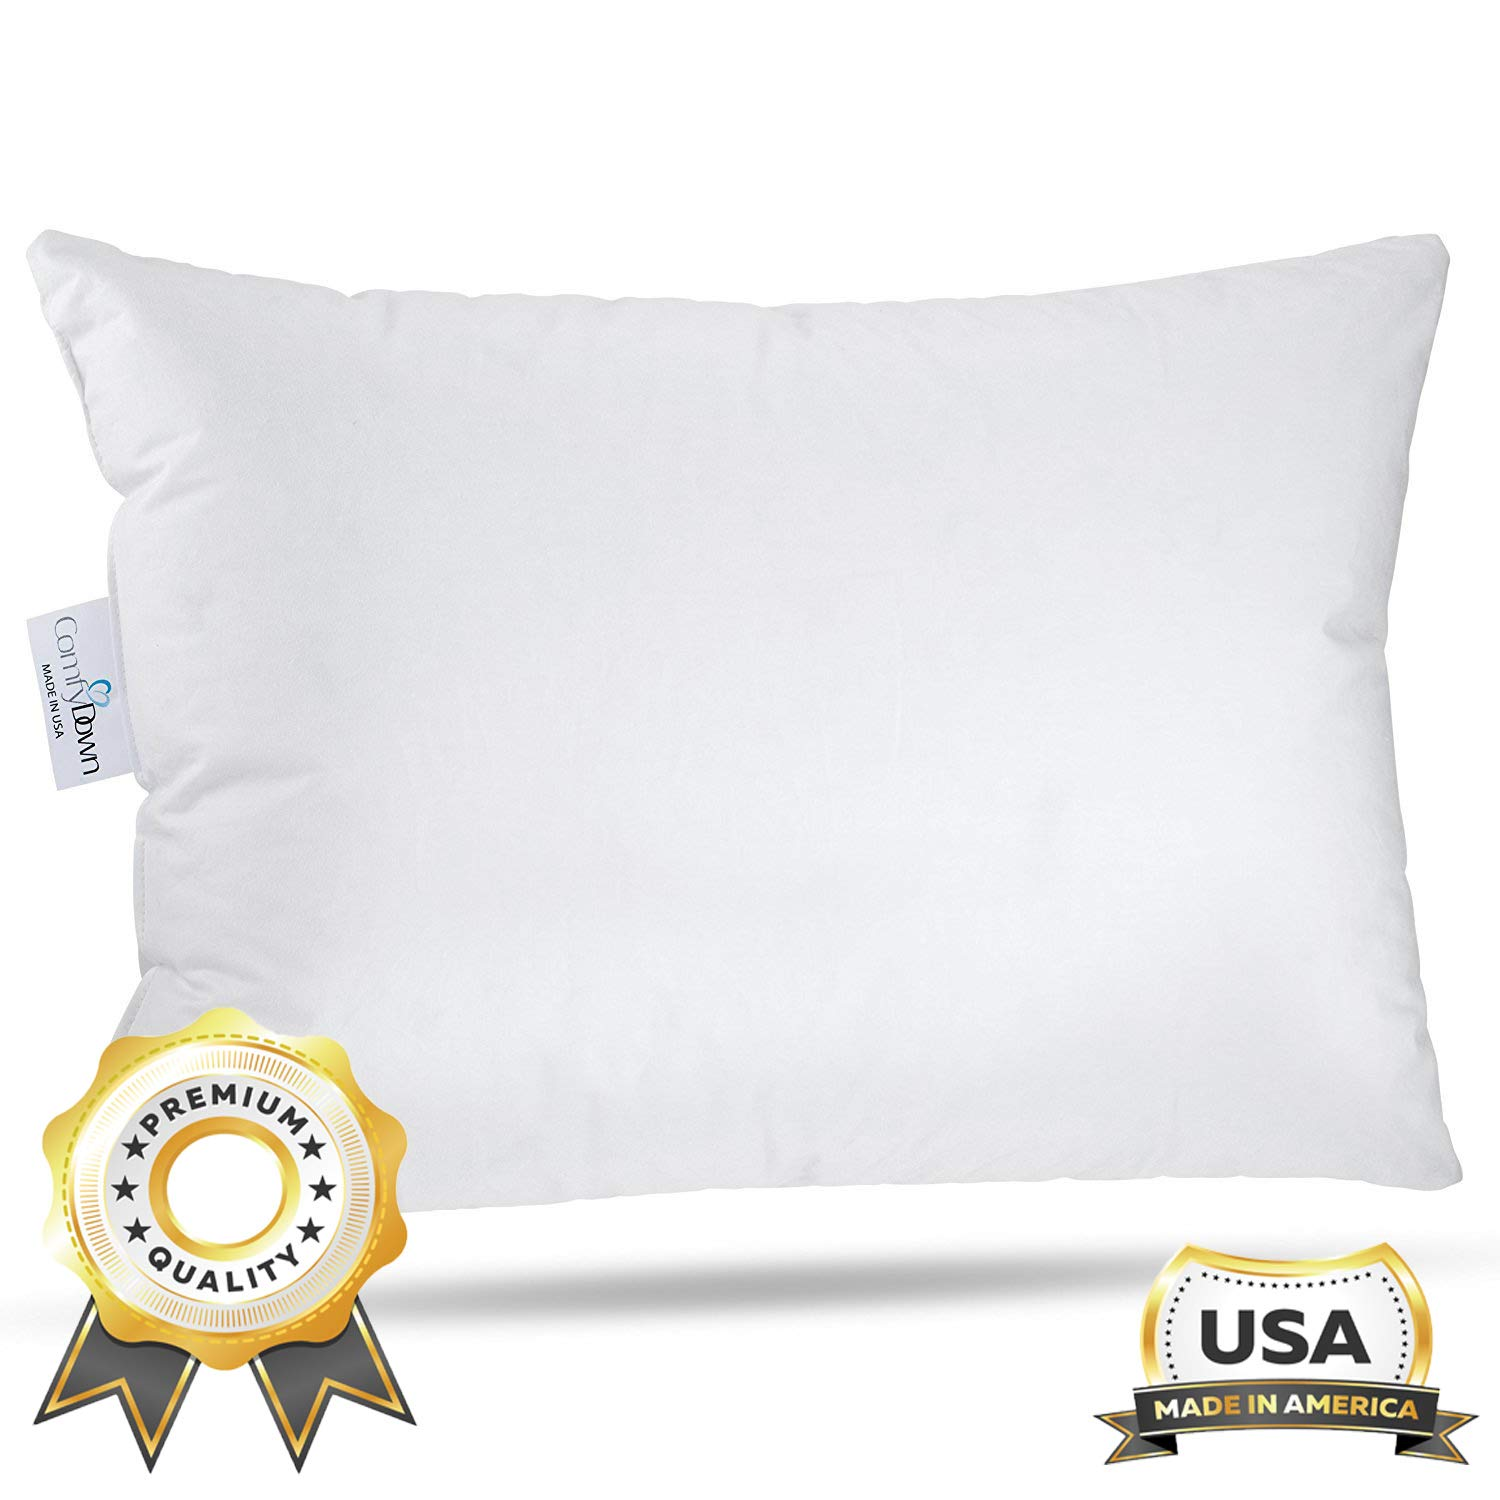 """ComfyDown Toddler Pillow - Machine Washable - 800 Fill Power Super Soft European Goose Down for Children Ages 18 Months to 6 Years - 300-Thread Count Egyptian Cotton Cover - Made in USA - 13""""x18"""""""